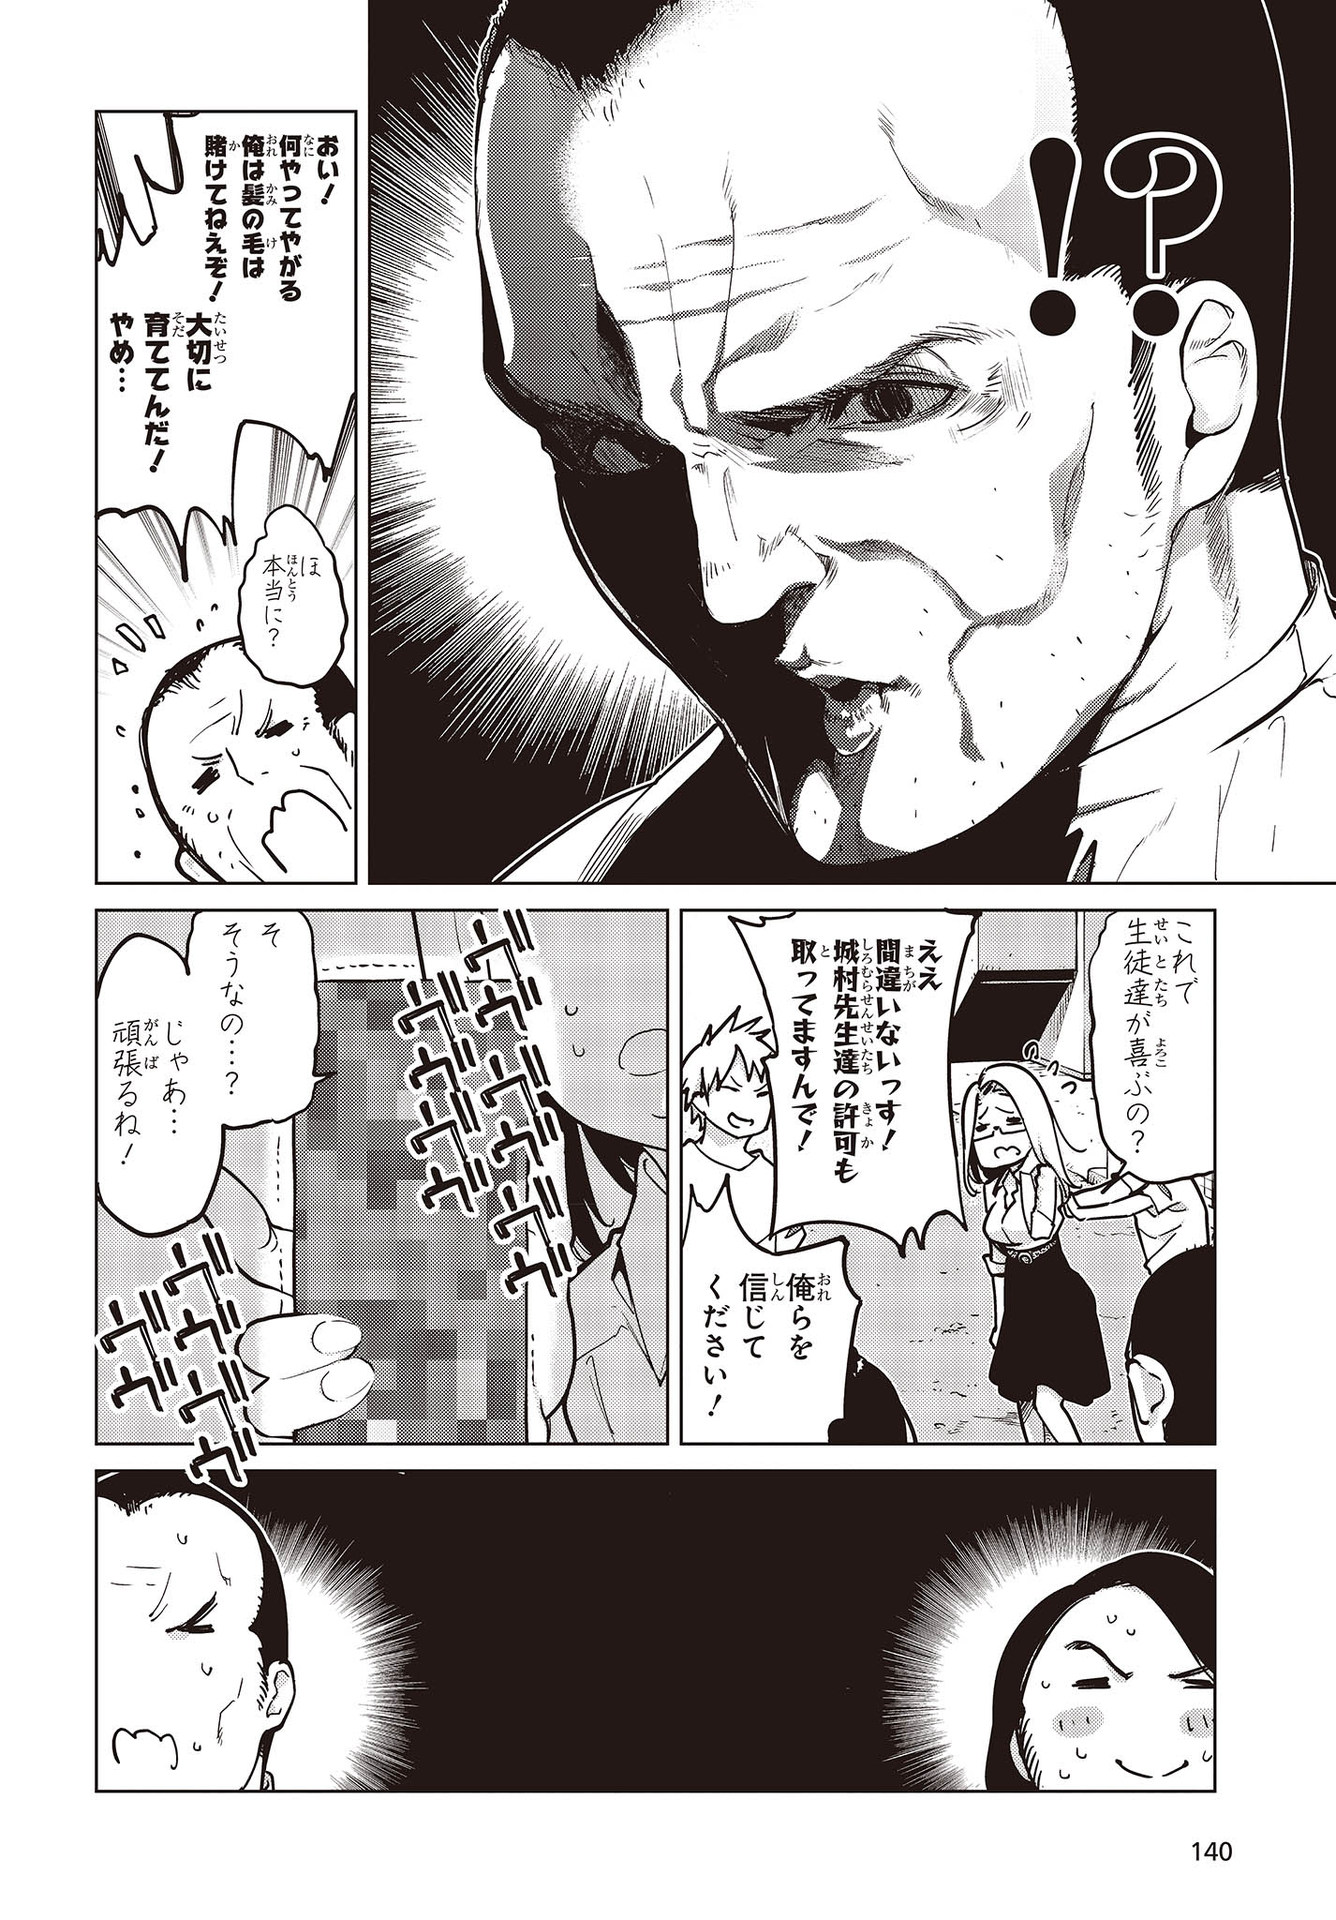 Manga Raw Oroka na Tenshi wa Akuma to Odoru Chapter 54